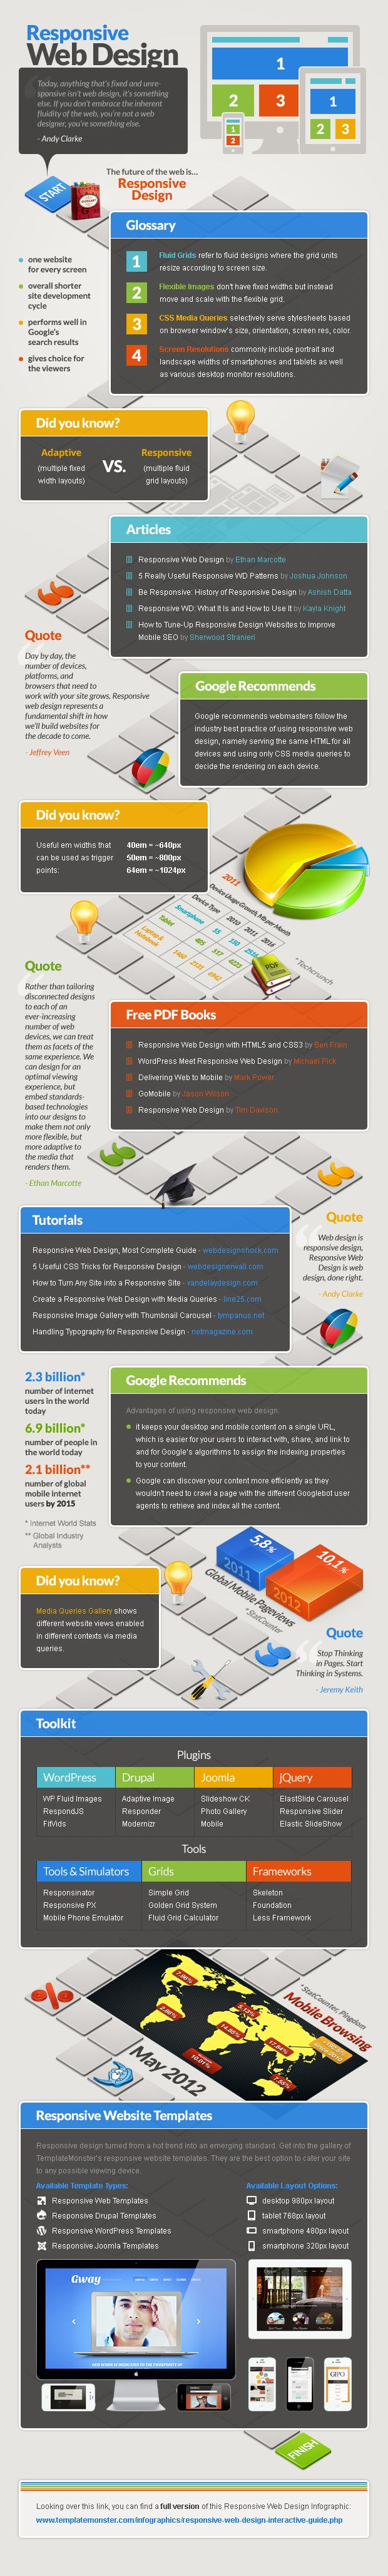 Responsive Web Design done properly! #webdesign #design #designer #infographs #web #infographics